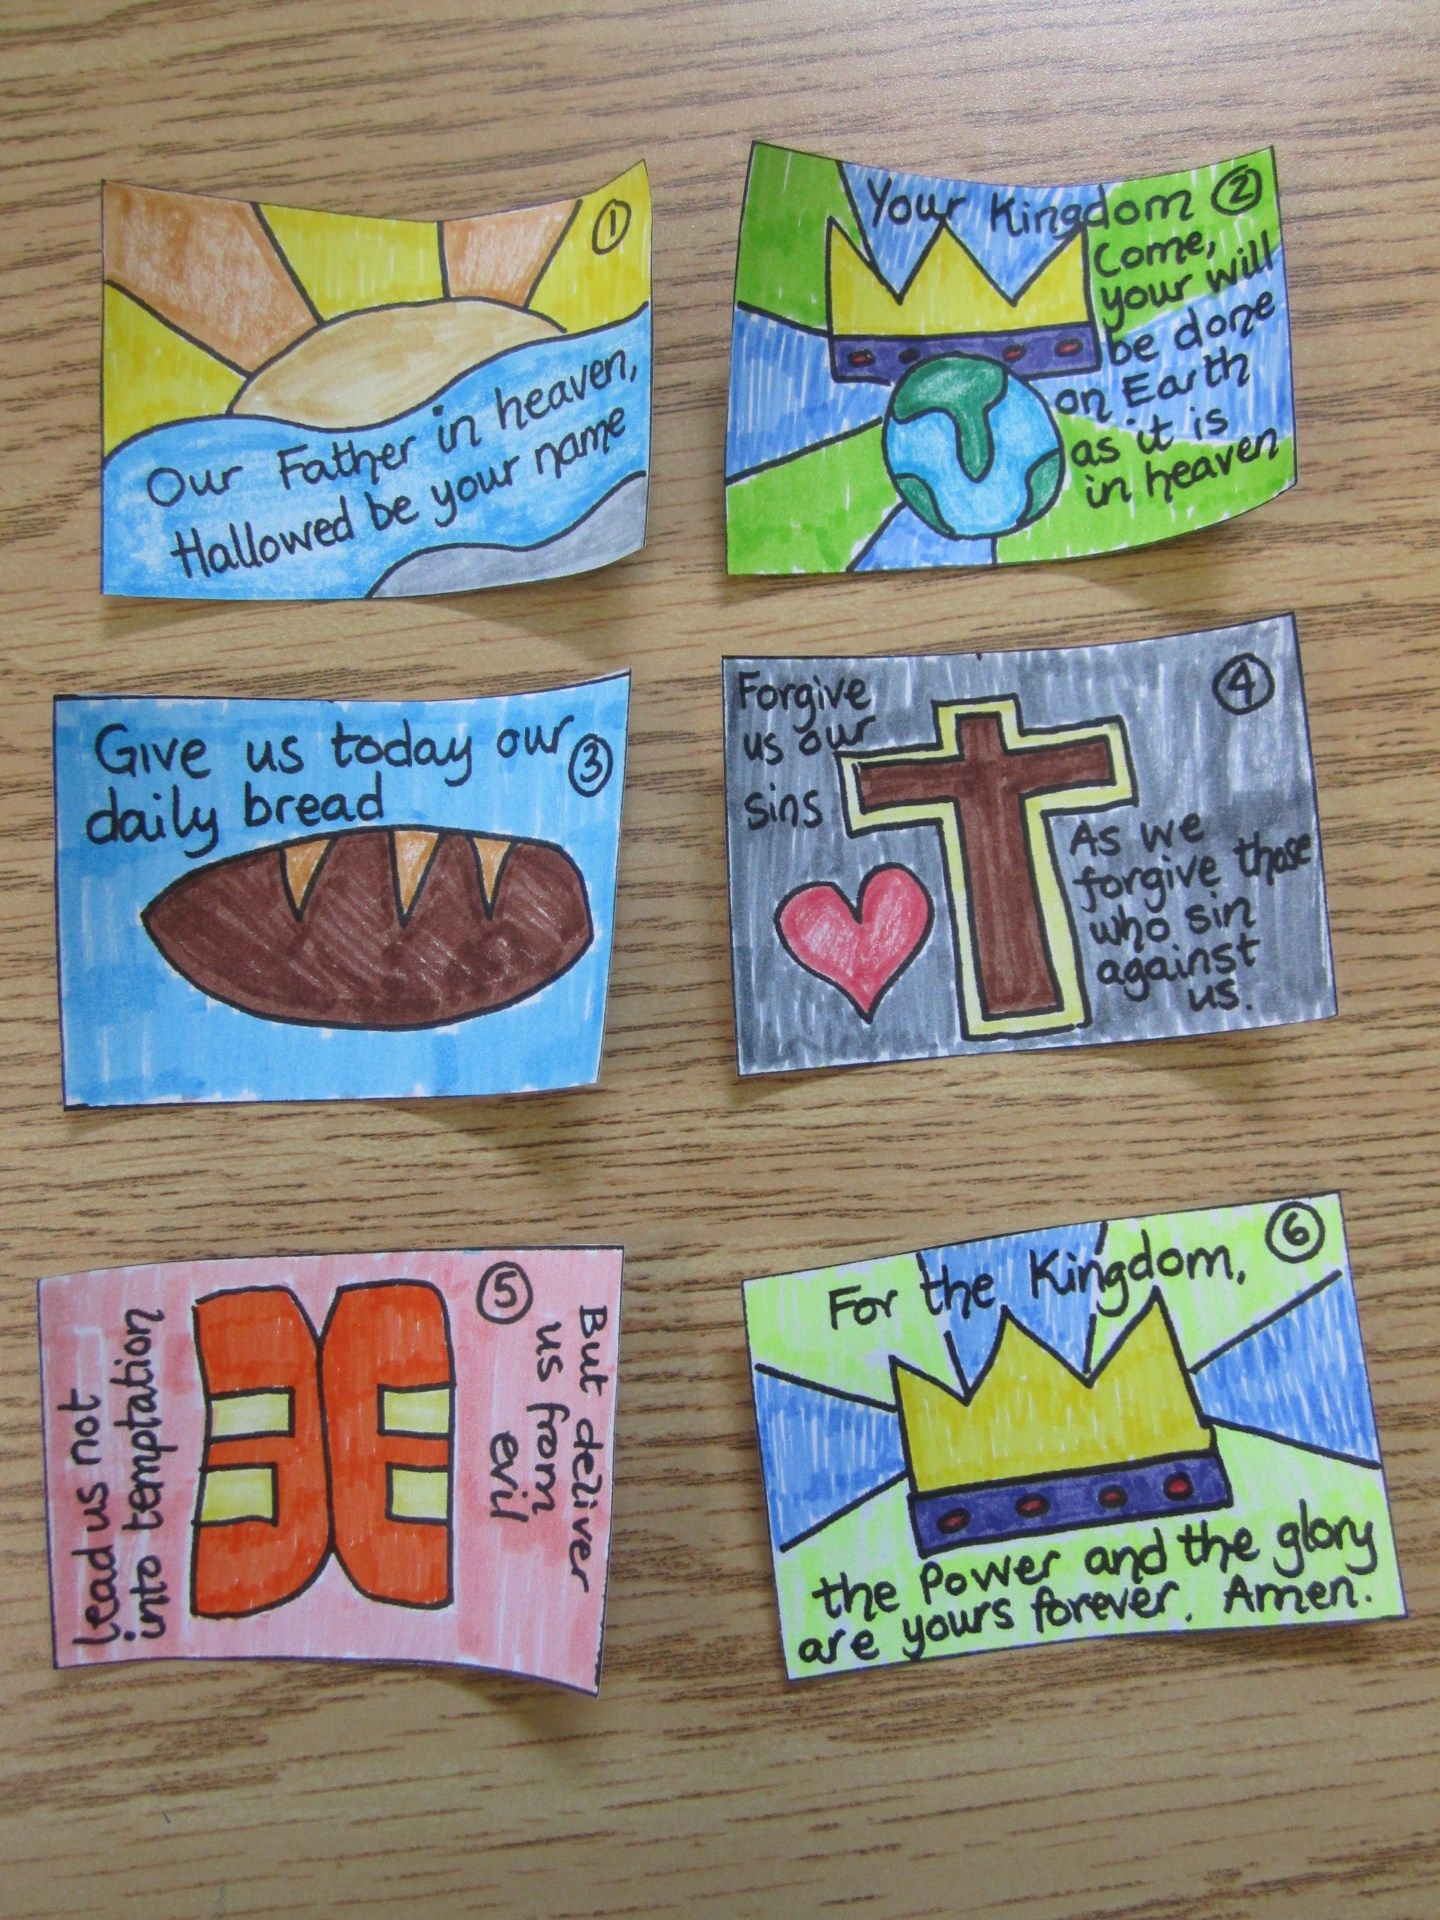 Lord S Prayer Booklet Ministry 2 Kids